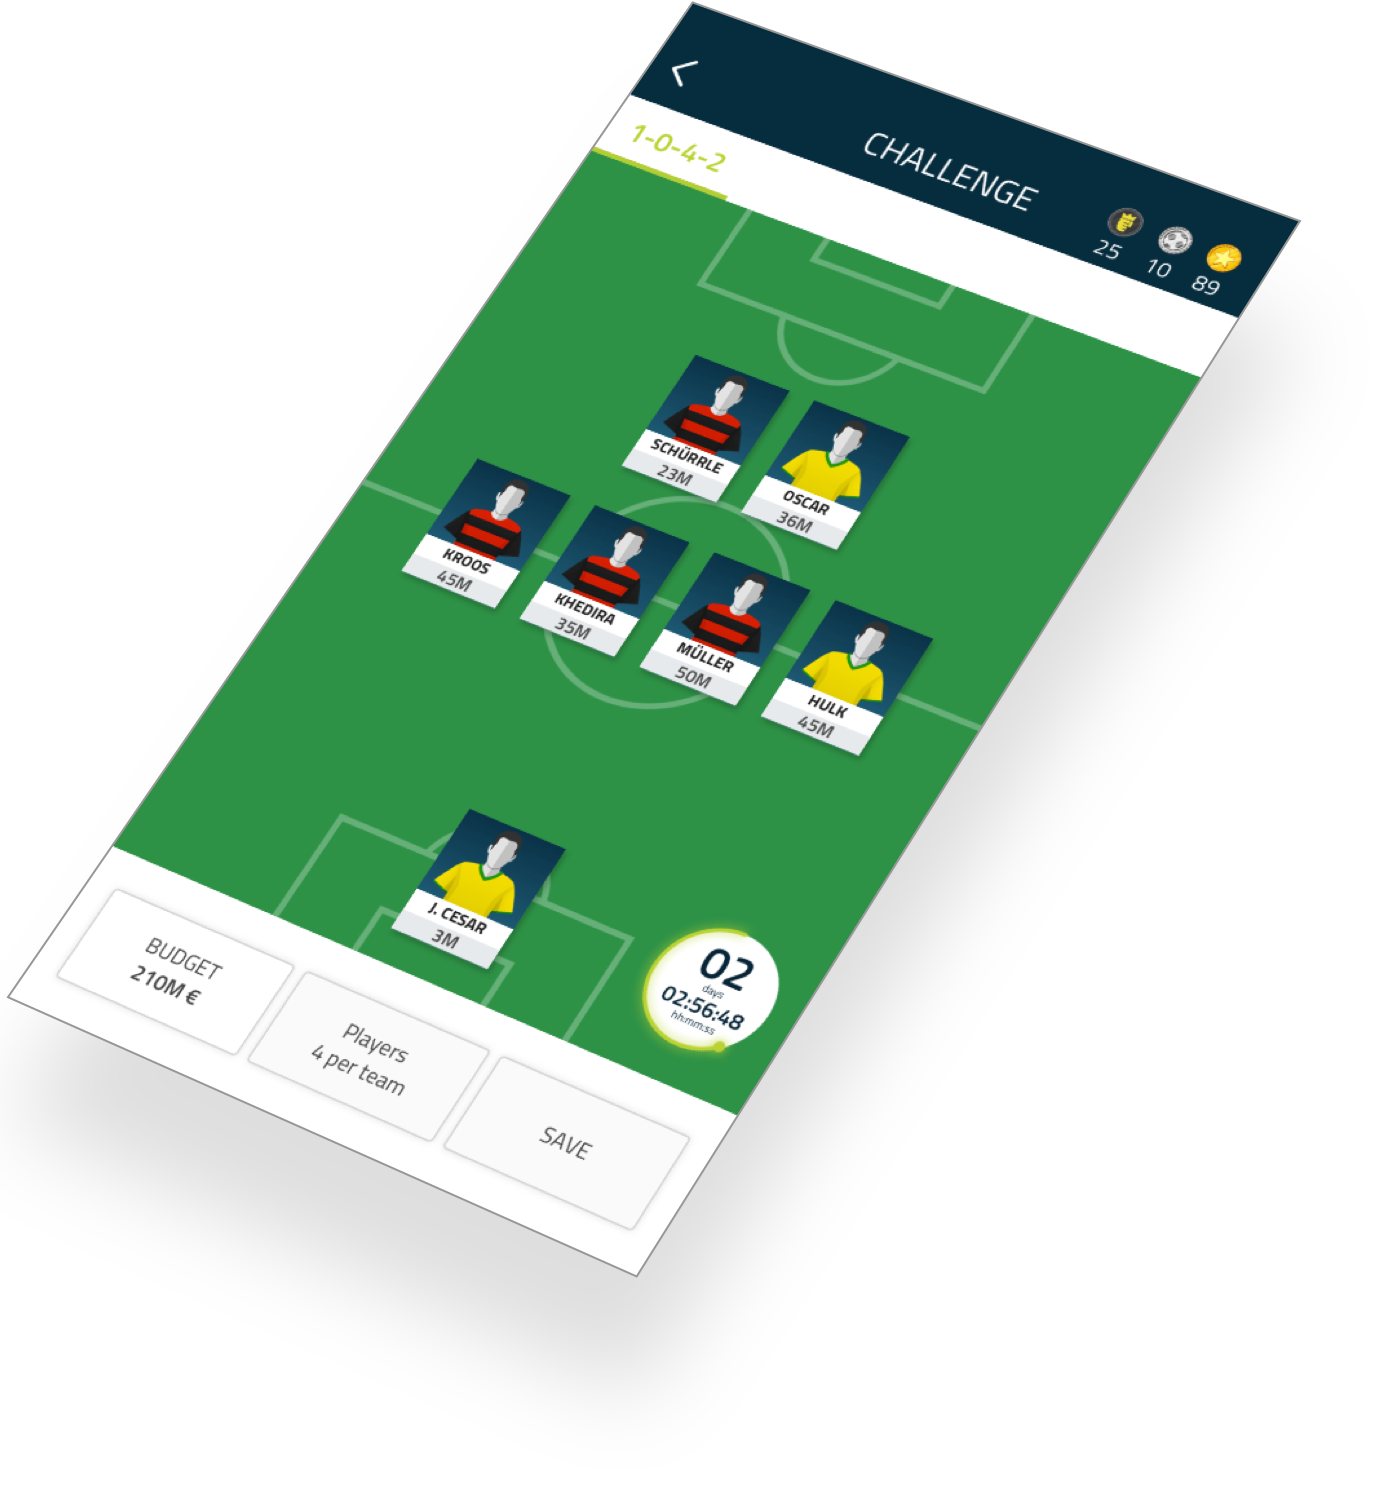 Football-Stars mobile app screen 2